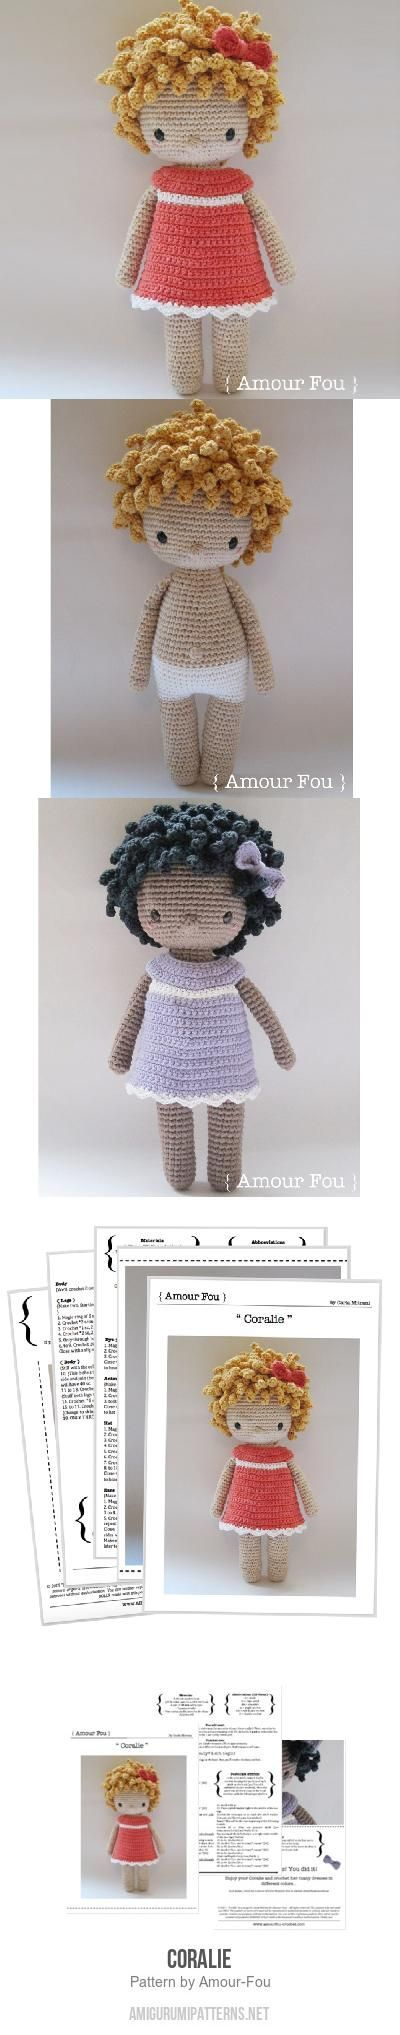 Crochet Pattern by {Amour Fou} Coralie